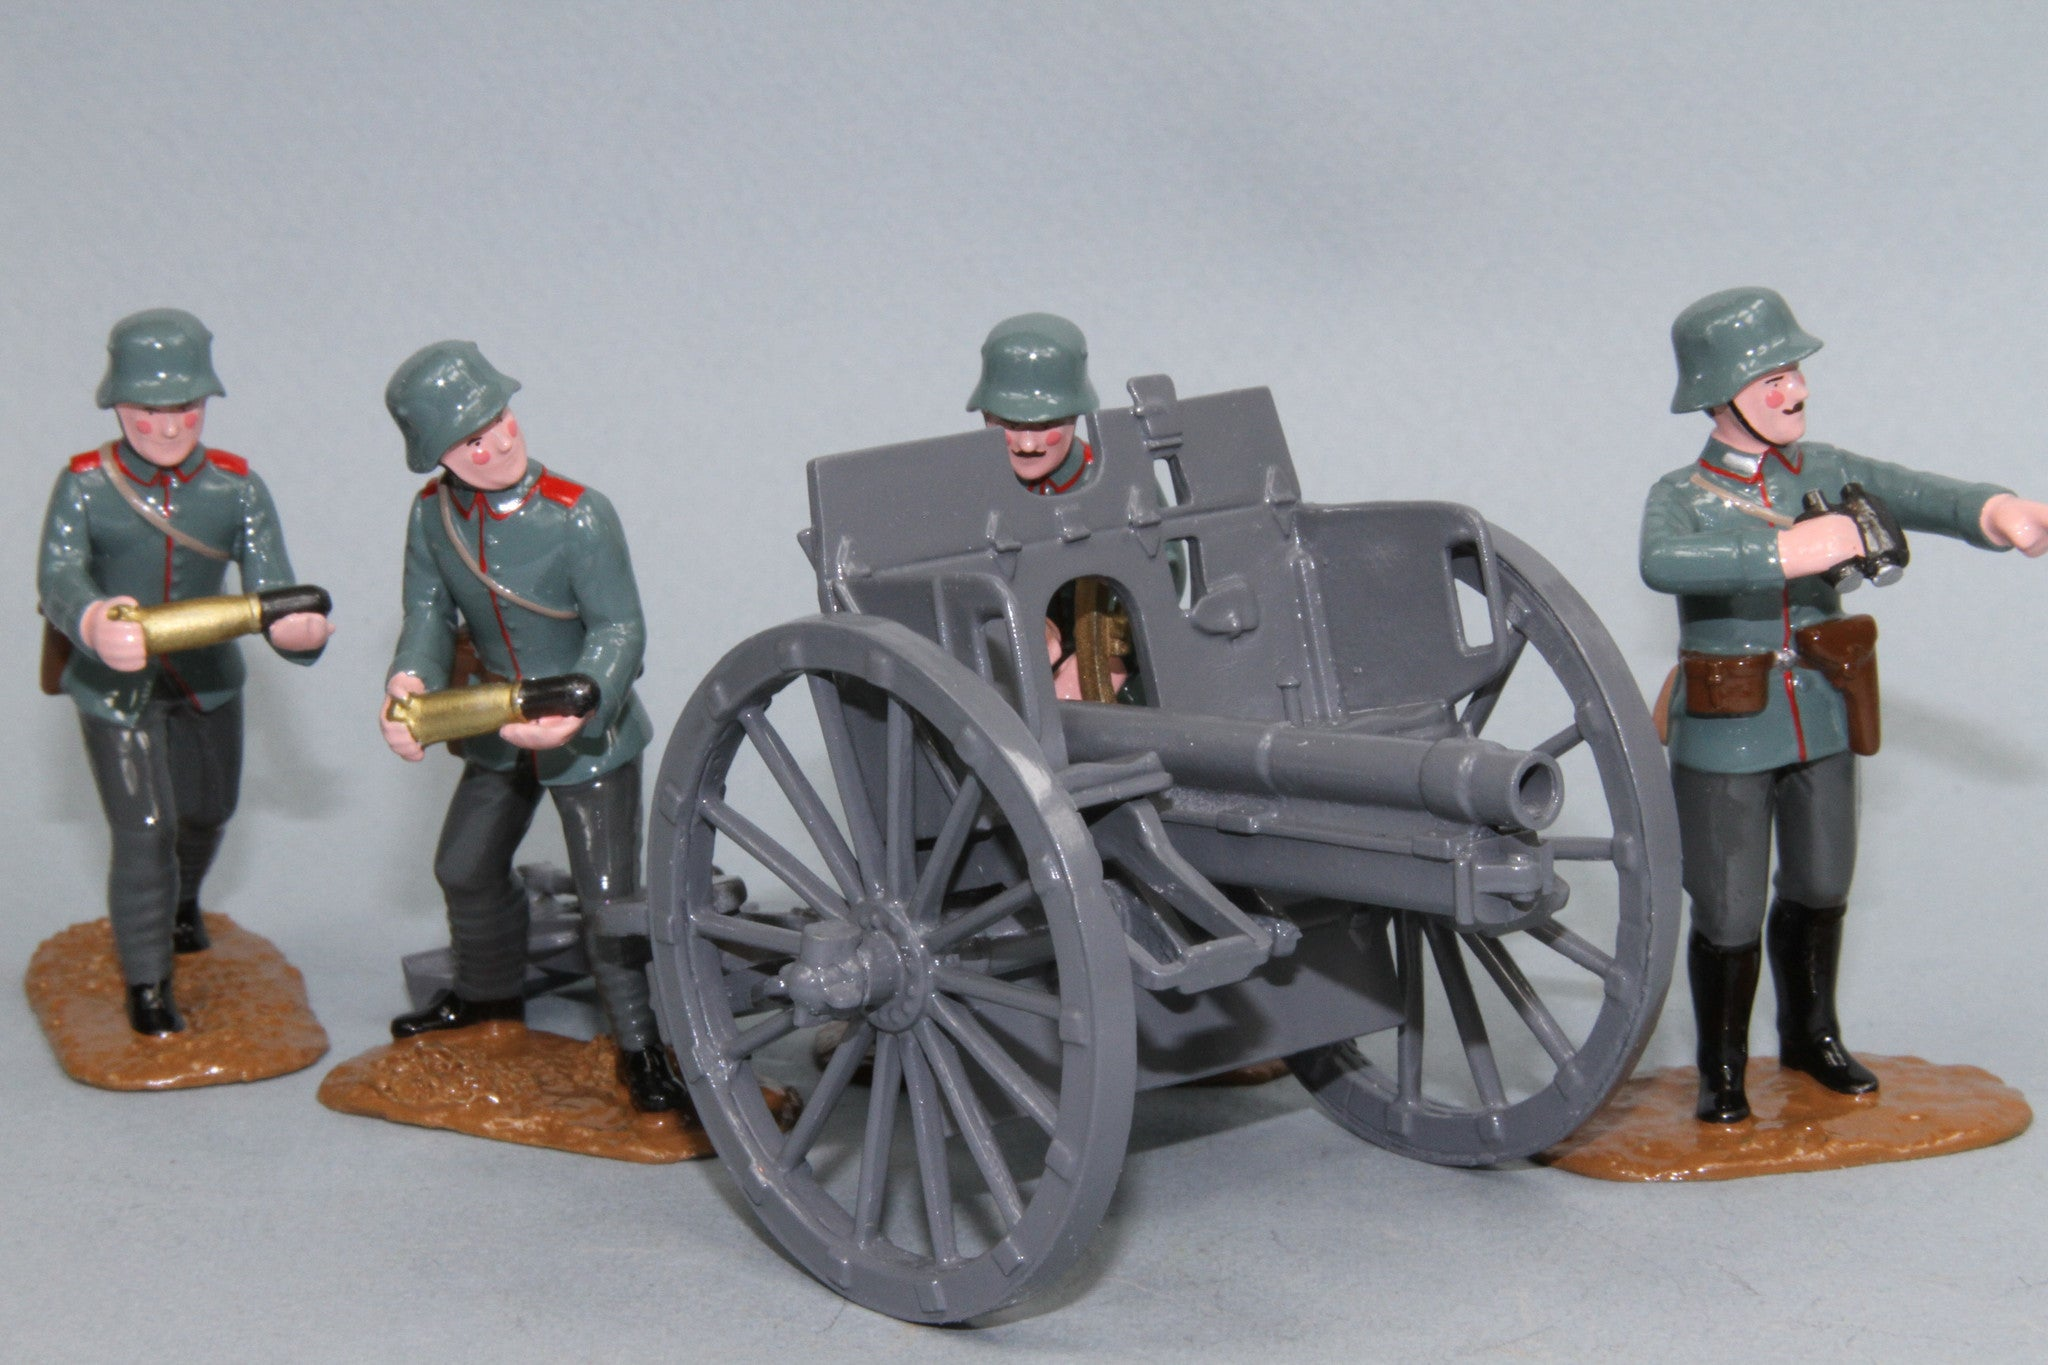 WW85A - Imperial German Army 77mm Field Gun and crew from Regal Toy Soldiers